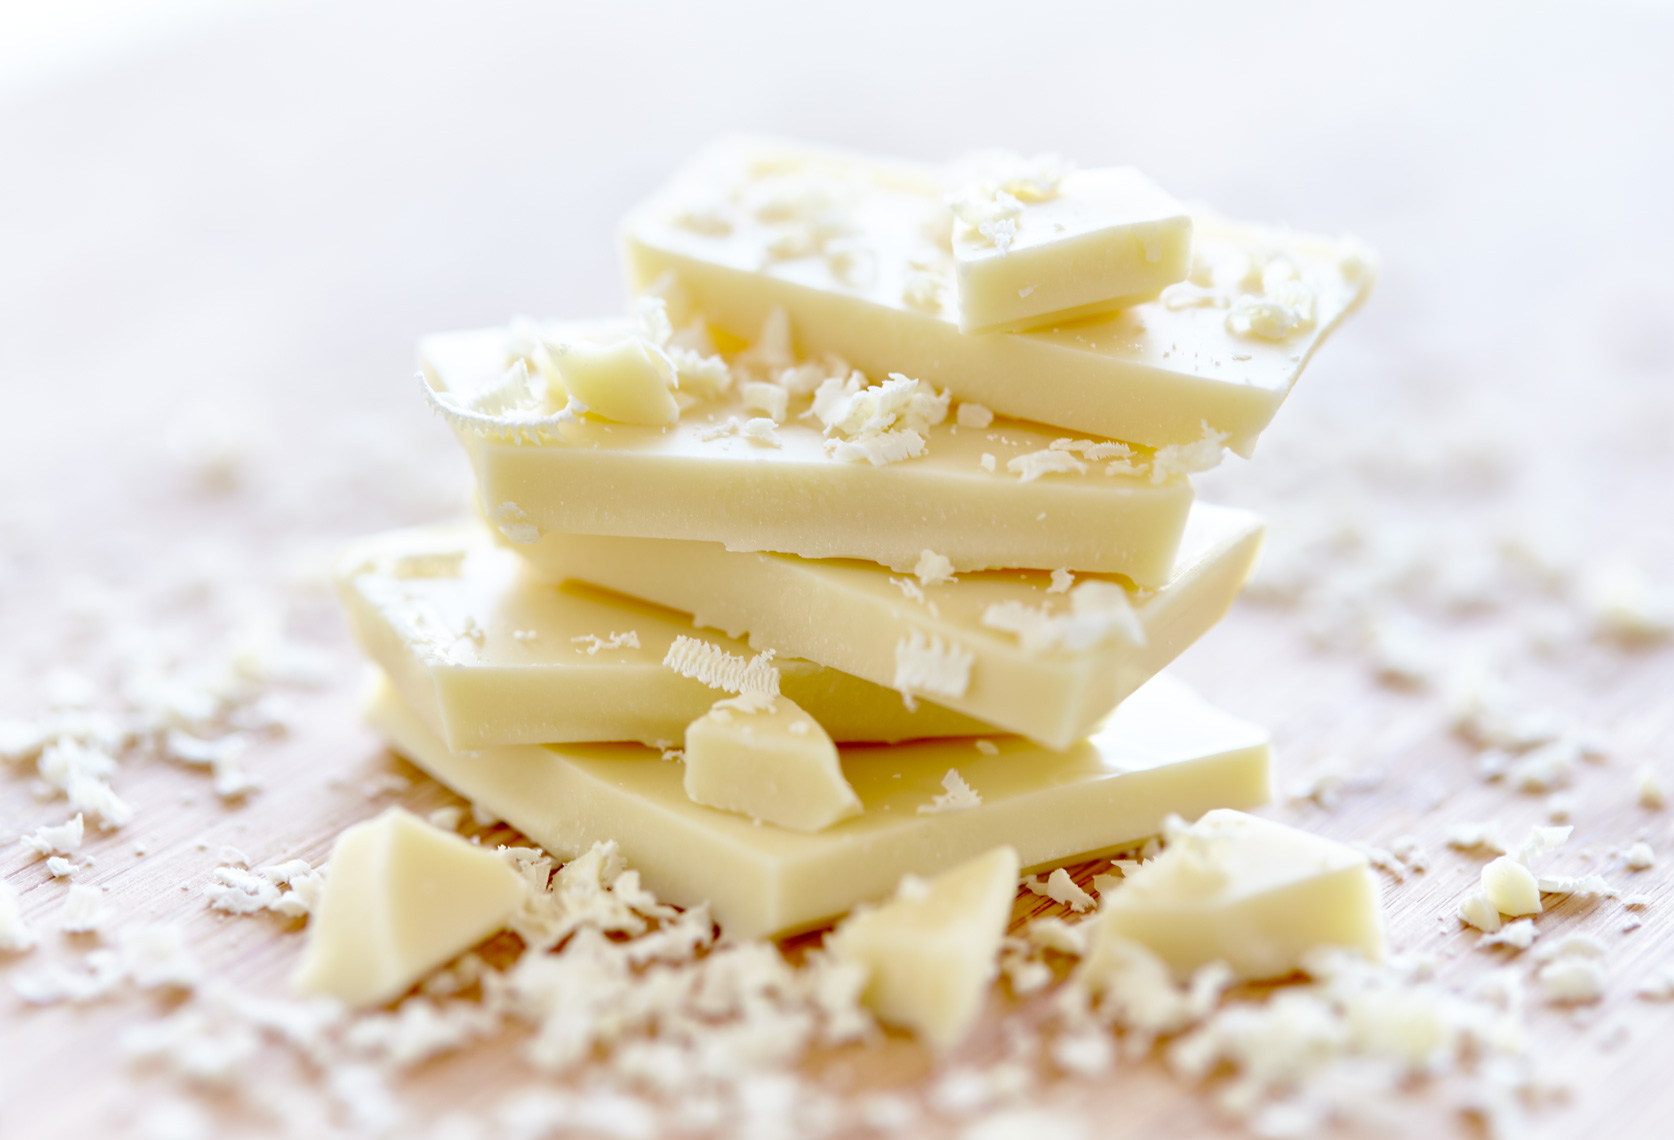 WhiteChocolateShavings